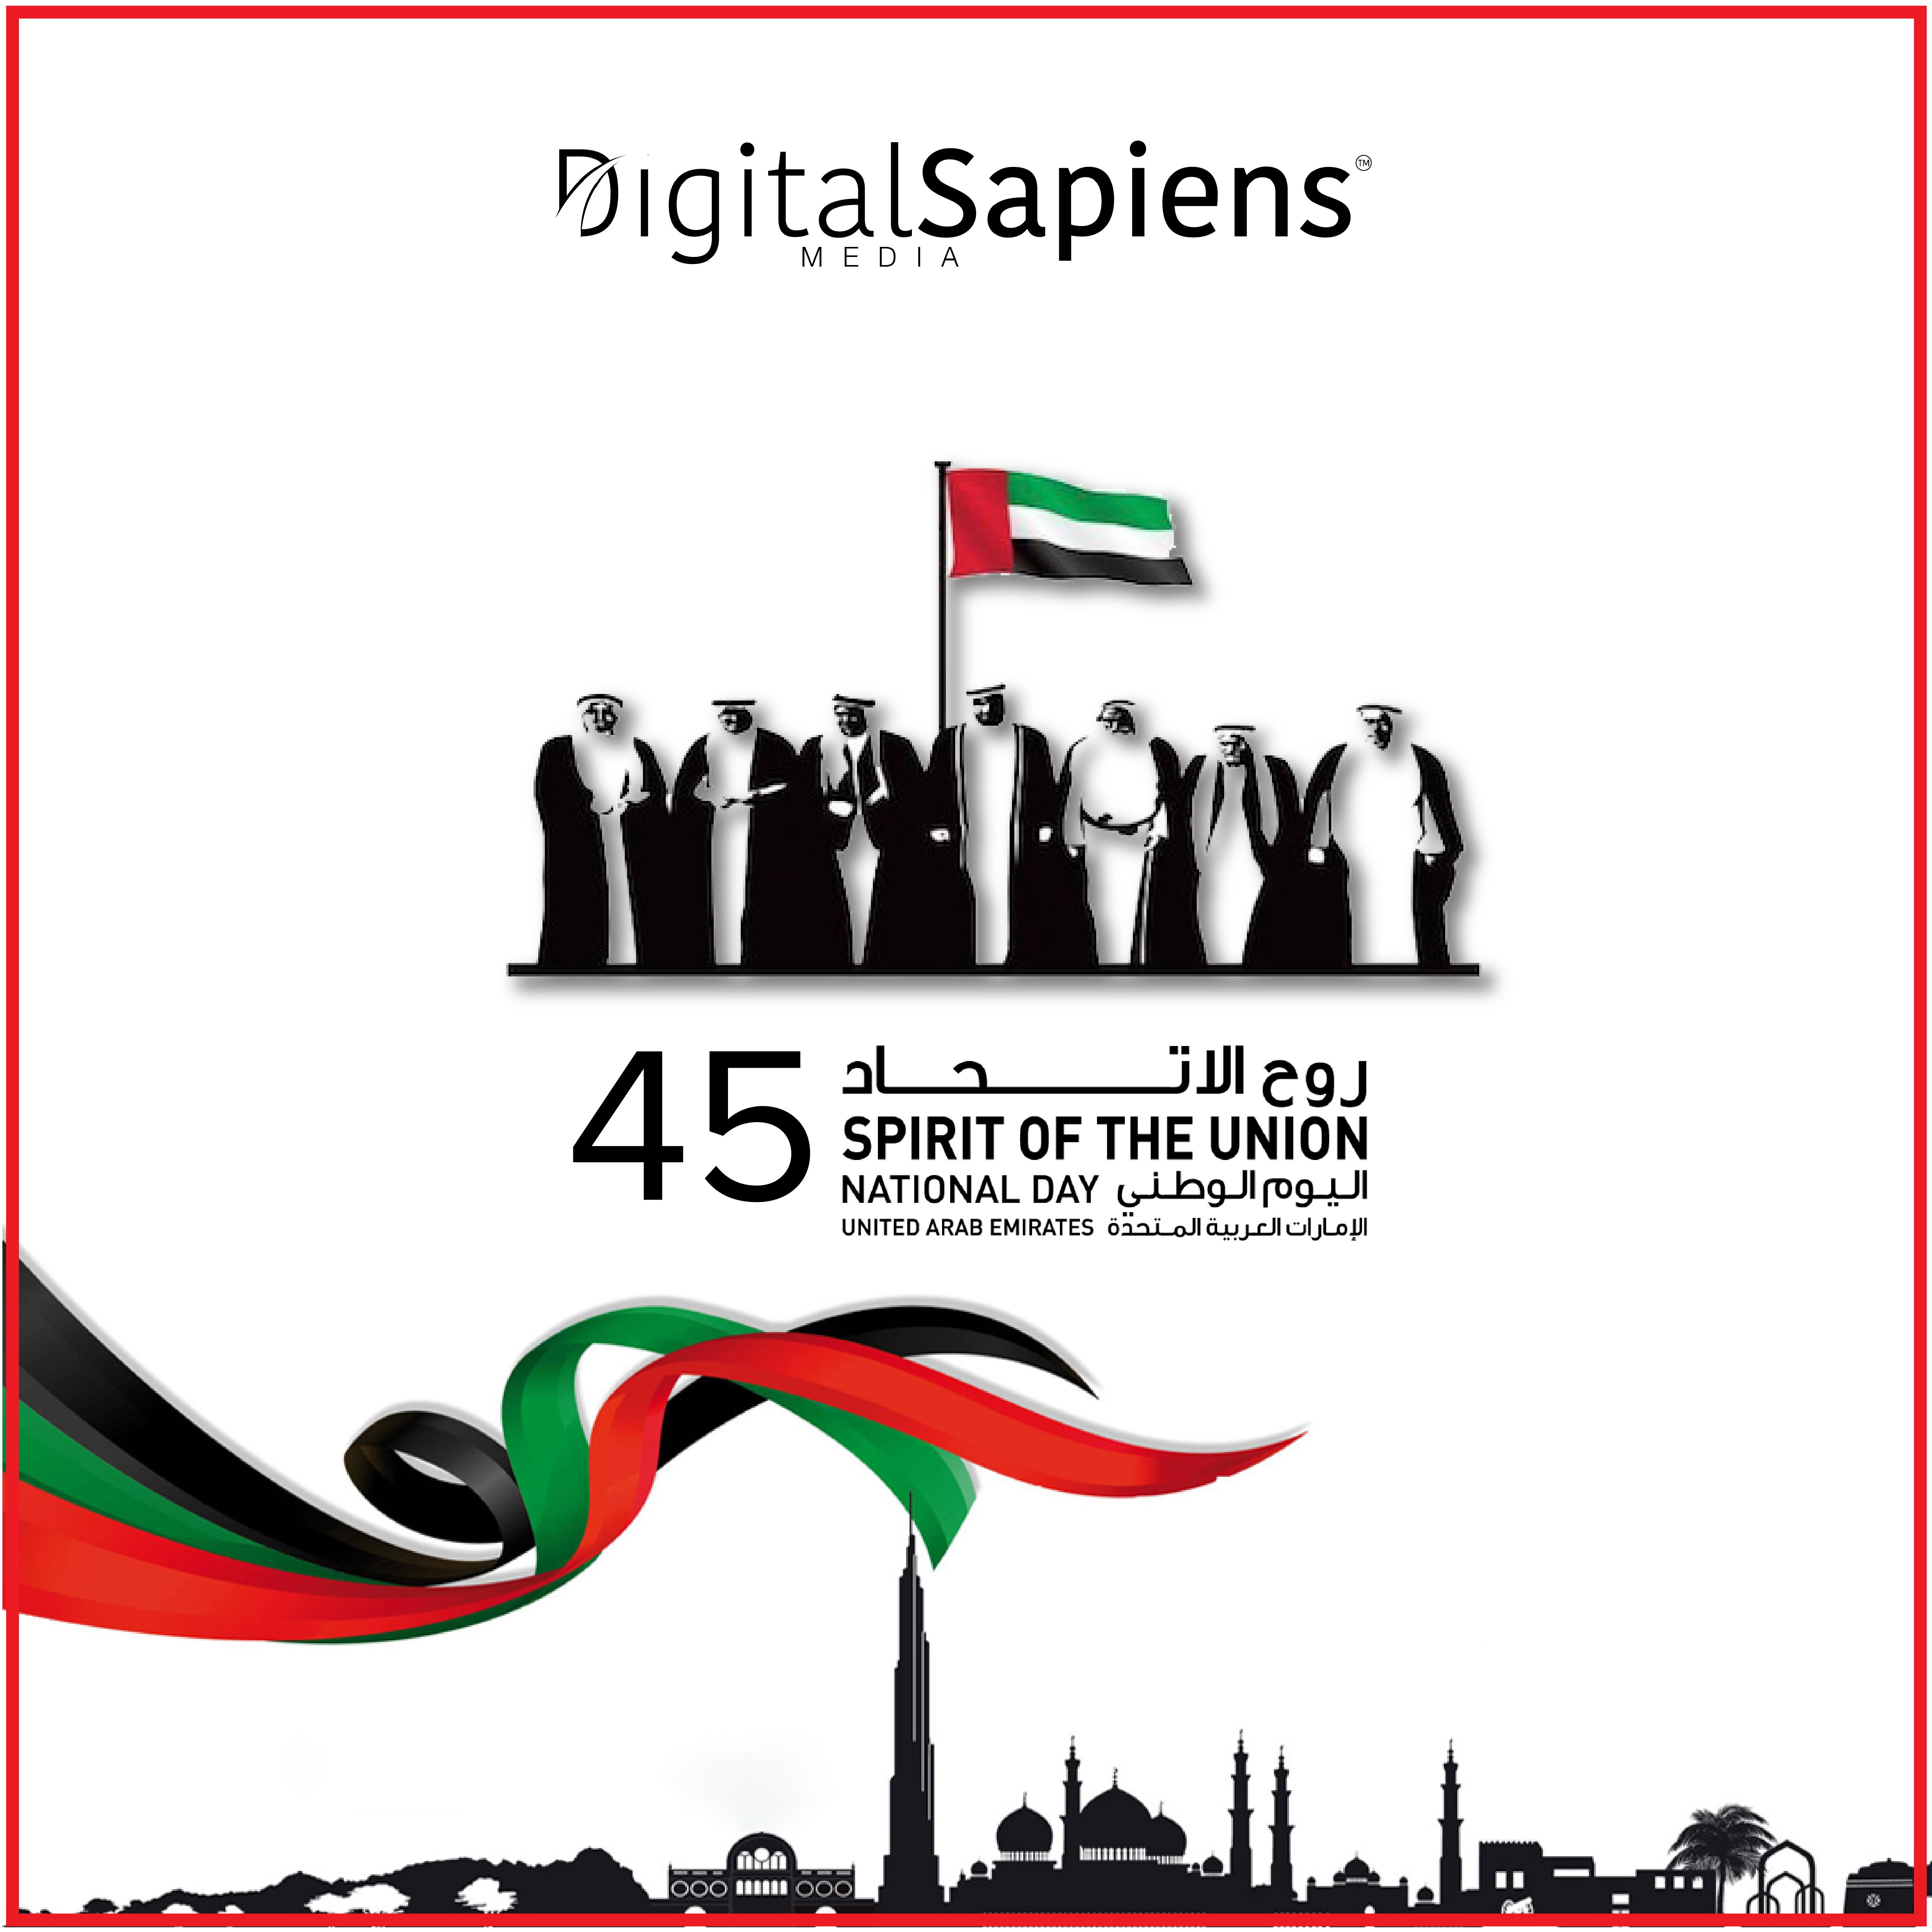 Digitalmediasapiens wishes all residents of uae a happy national digitalmediasapiens wishes all residents of uae a happy national day uaenationalday biocorpaavc Images